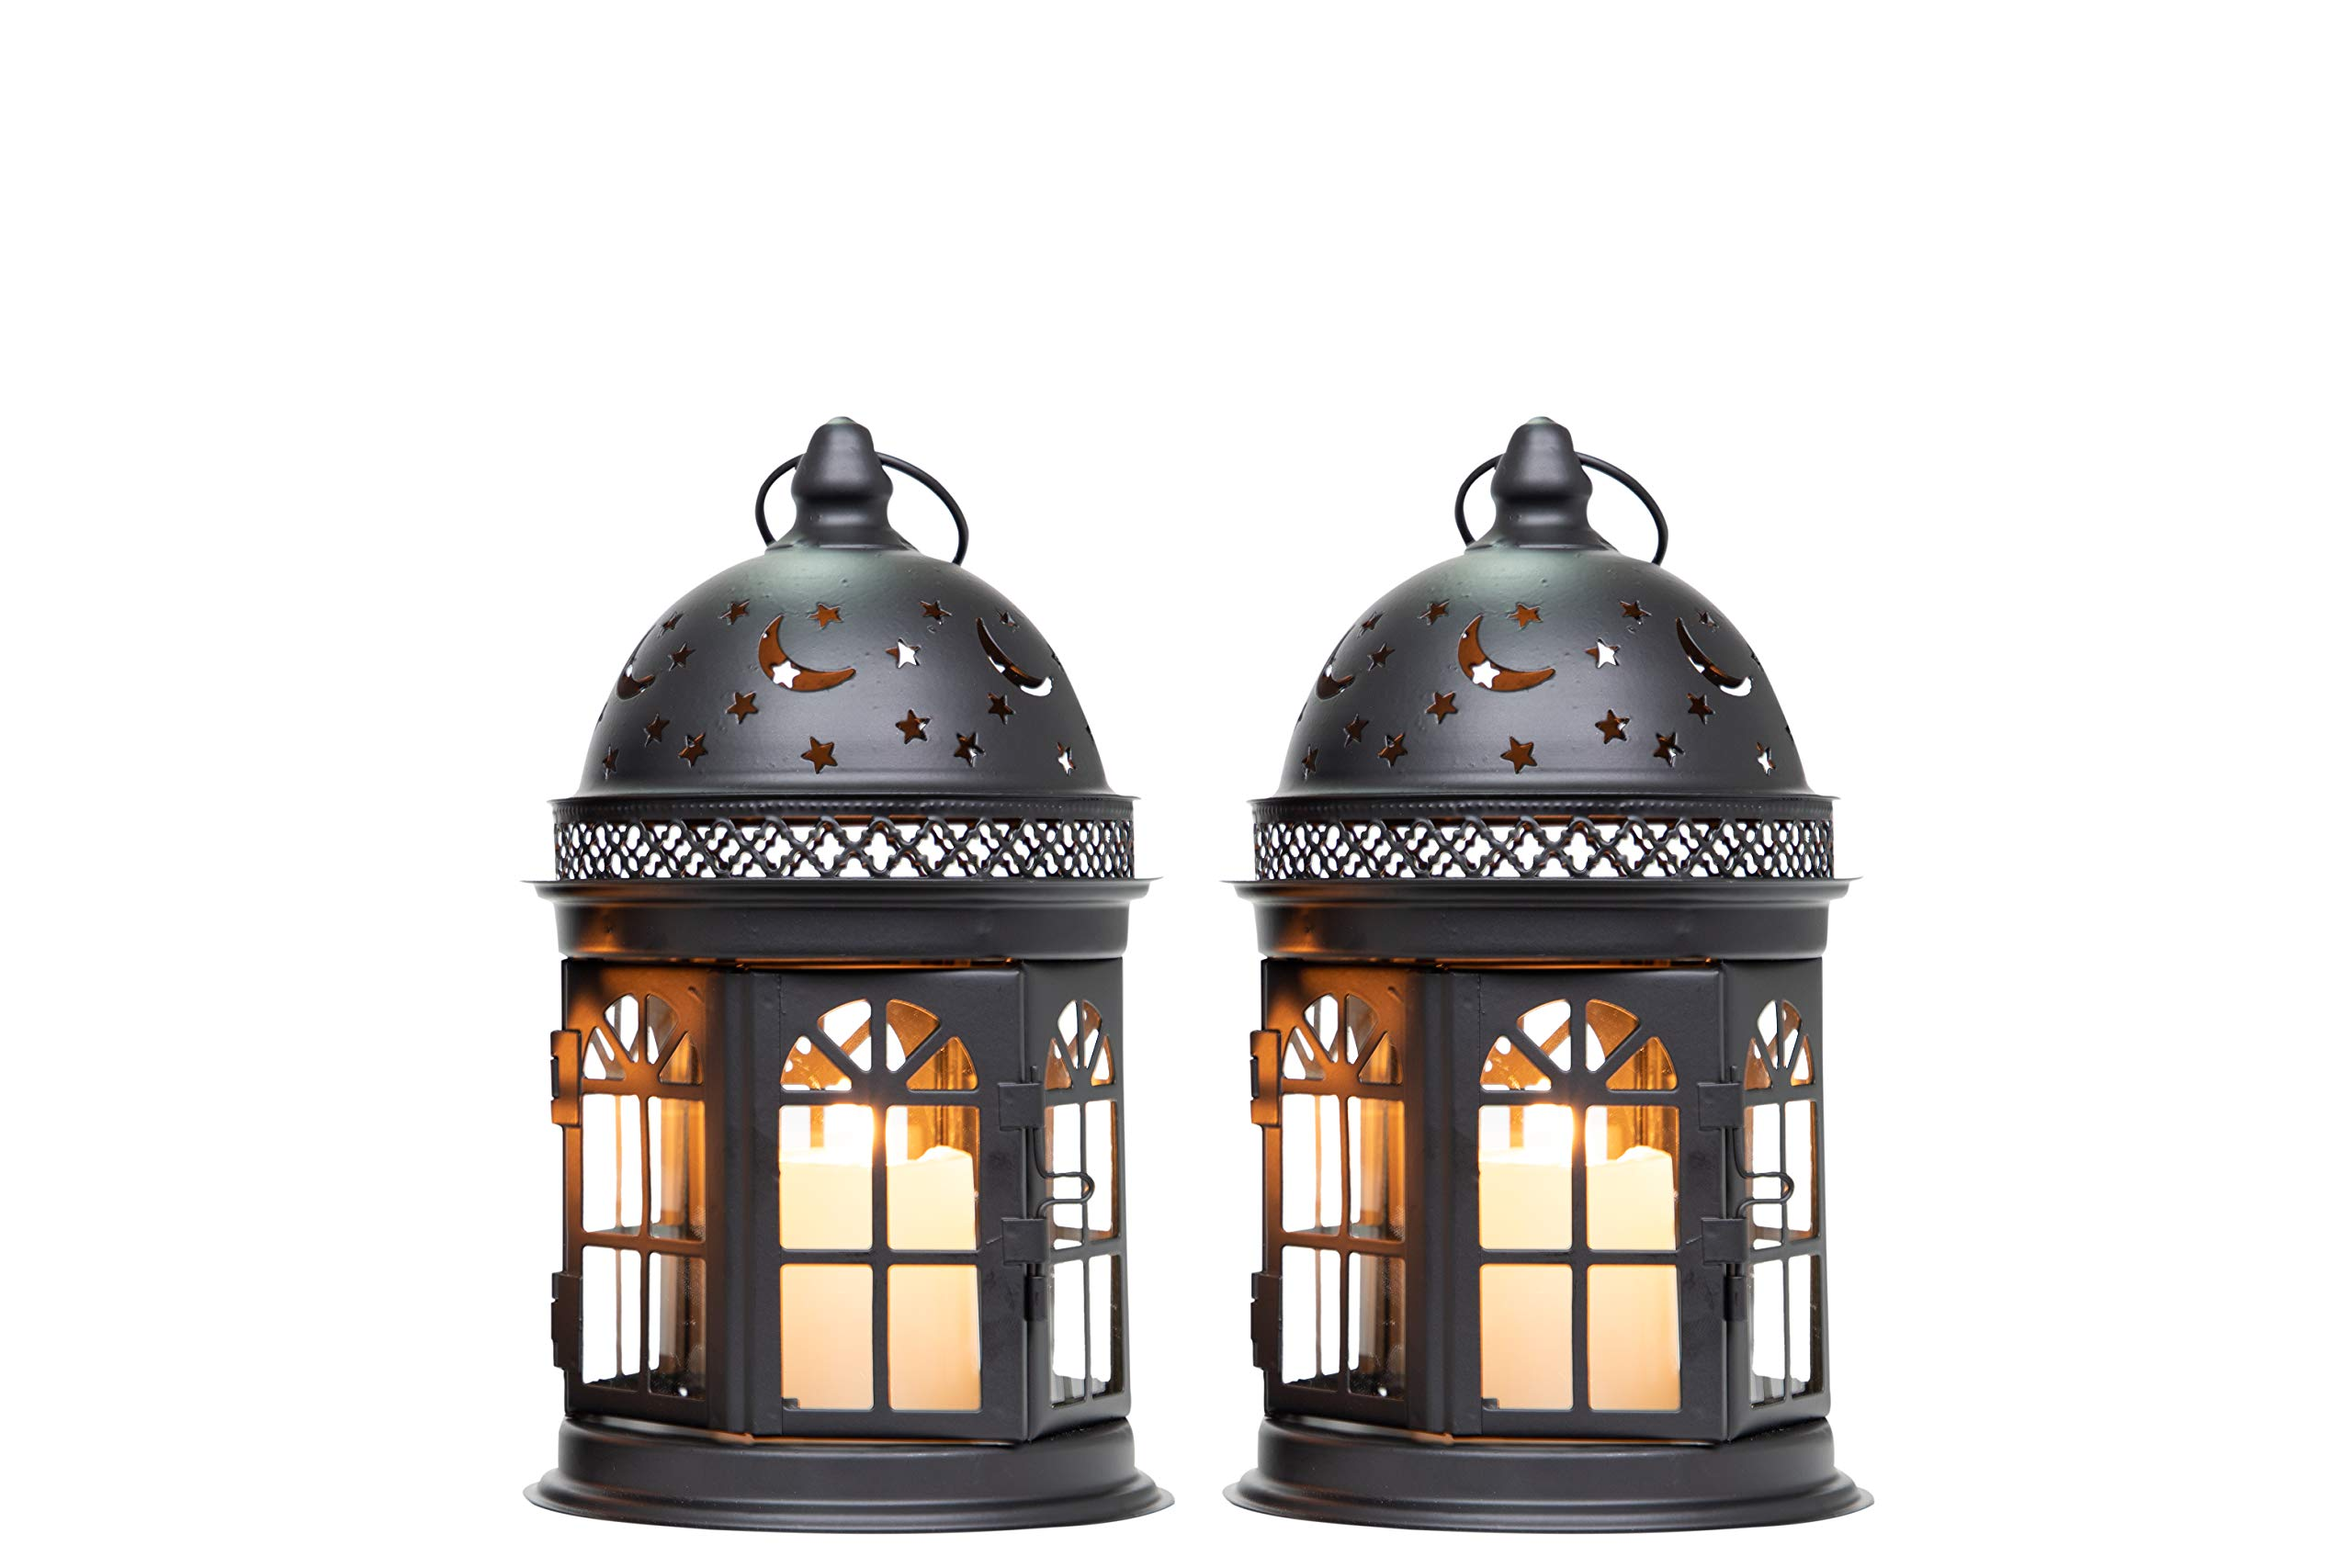 JHY DESIGN Set of 2 Decorative Lanterns-8.5inch High Vintage Style Hanging Lantern Metal Candle Holder for Indoor Outdoor Events Parities and Weddings (Black)